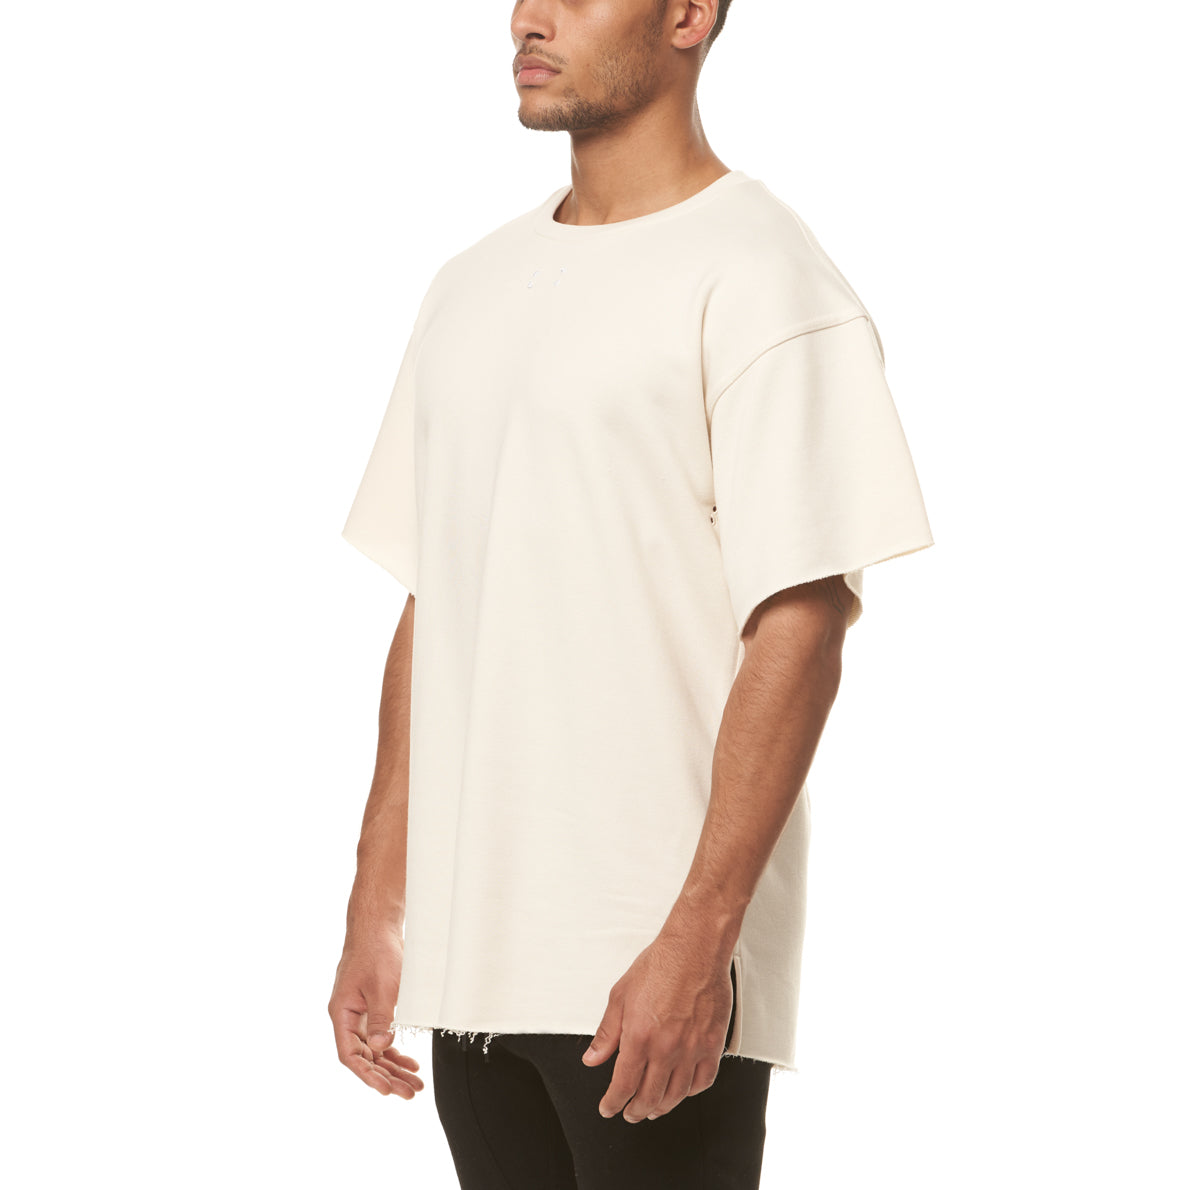 0339. French Terry Oversized Tee - Ivory Cream